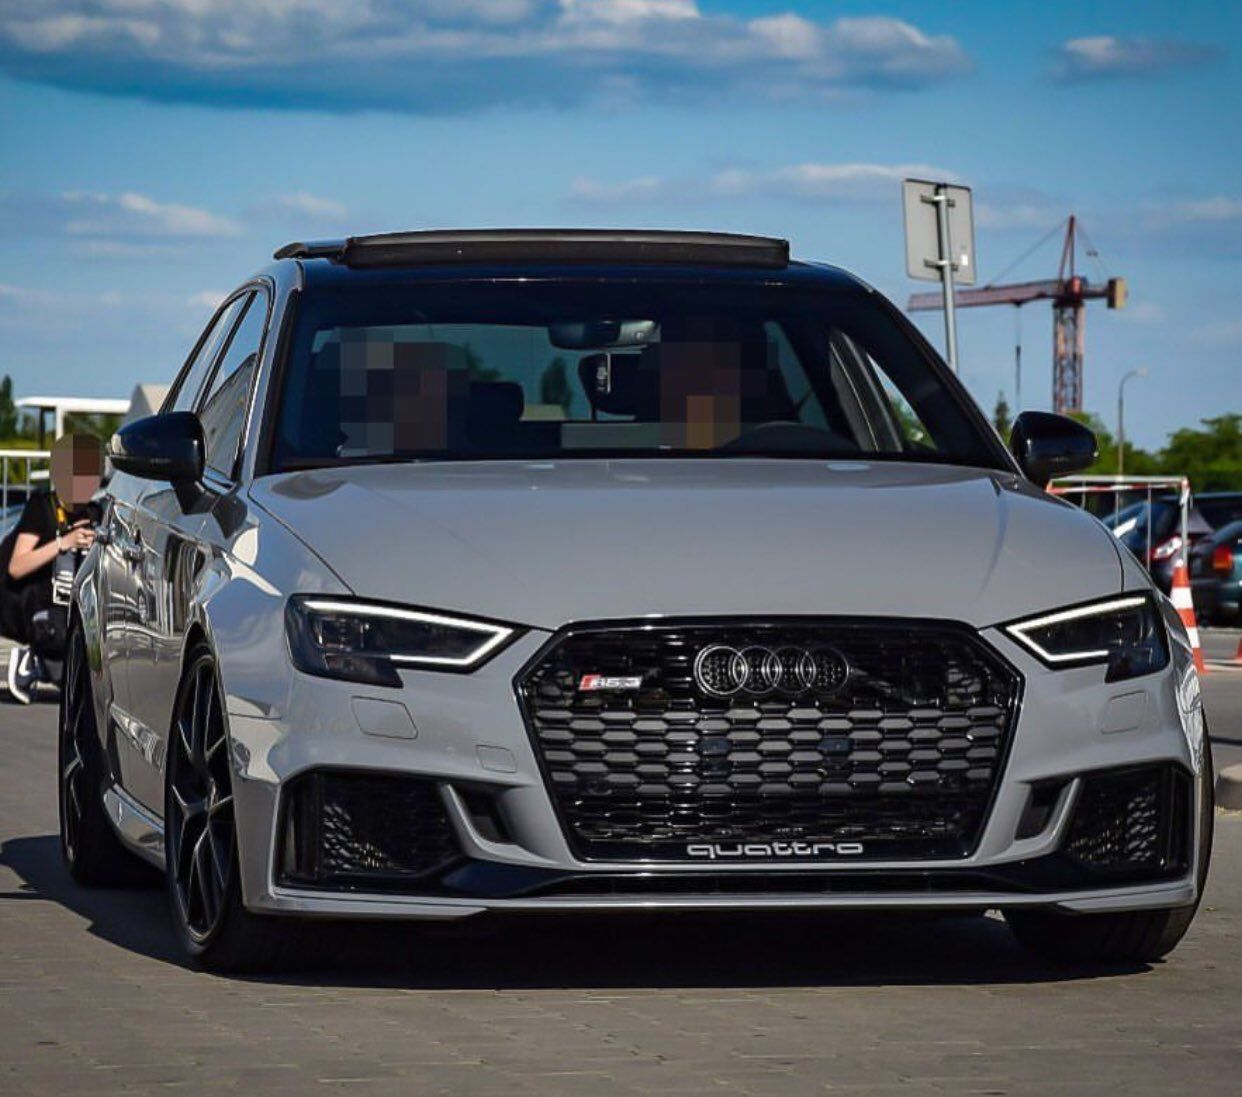 Audi RS3 #audi #rs3 #rs #audirs3